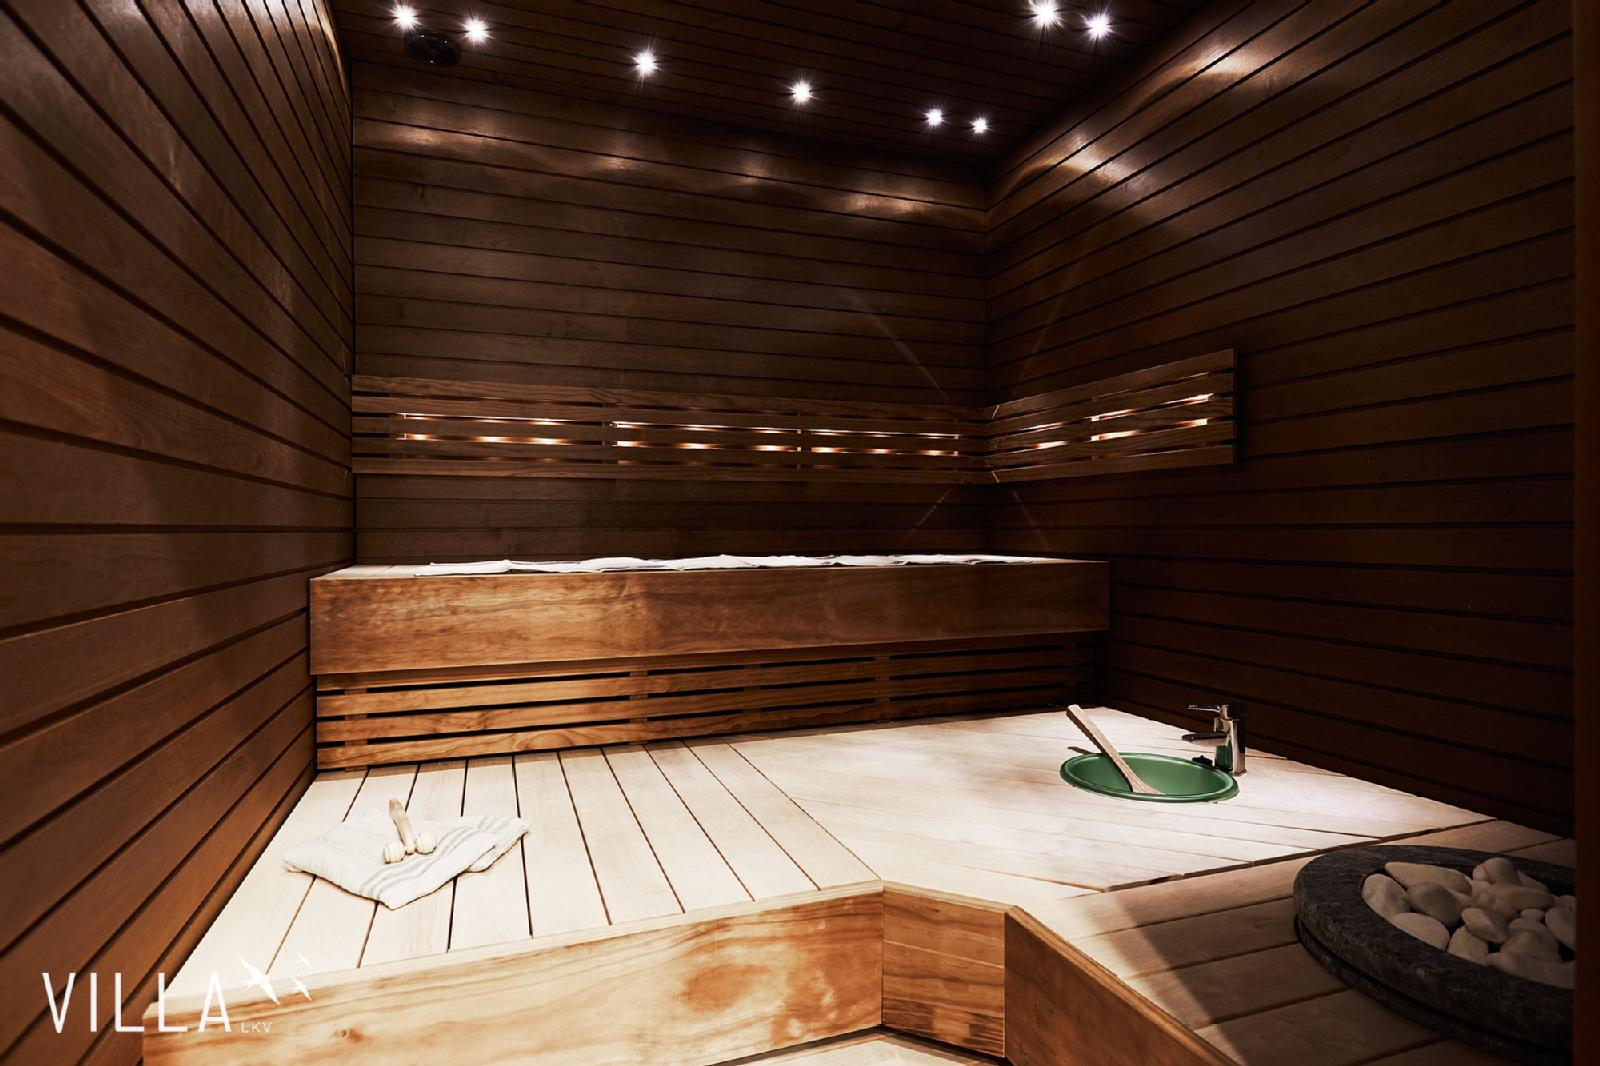 Sauna Heater and Other Luxury Touches Which Could Really